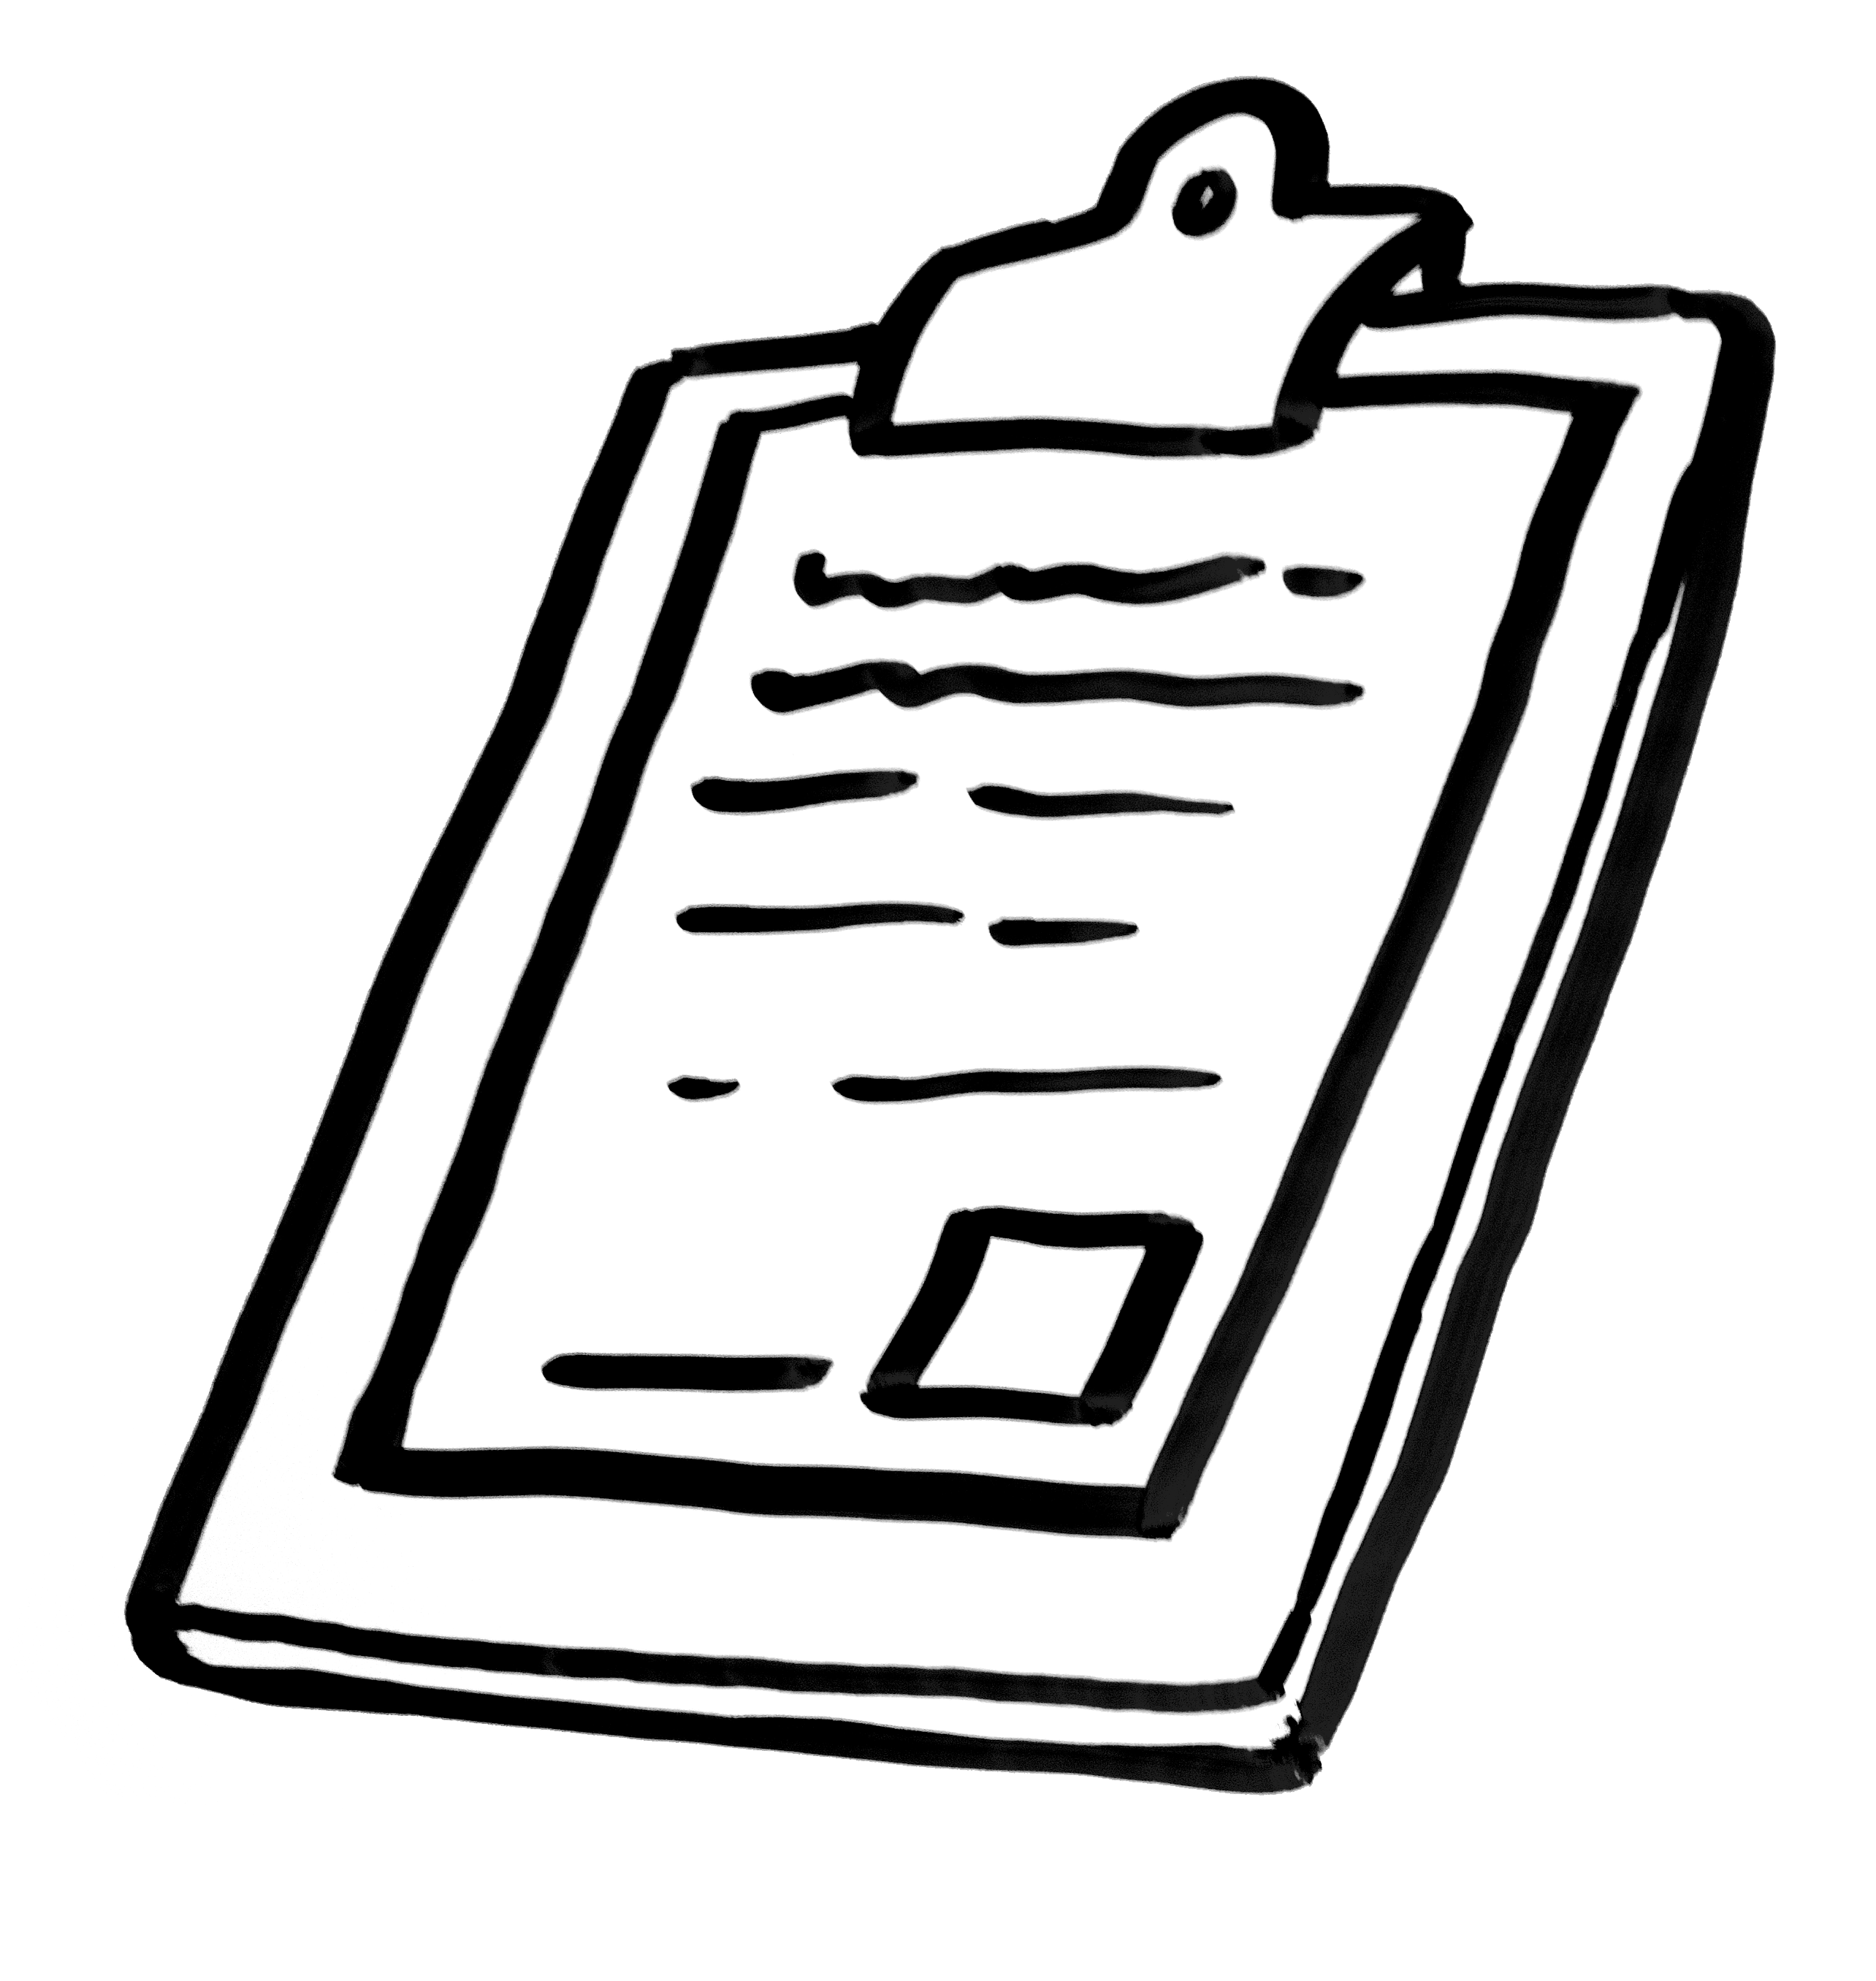 royalty free download Clipboard clipart black and white. Next day animations